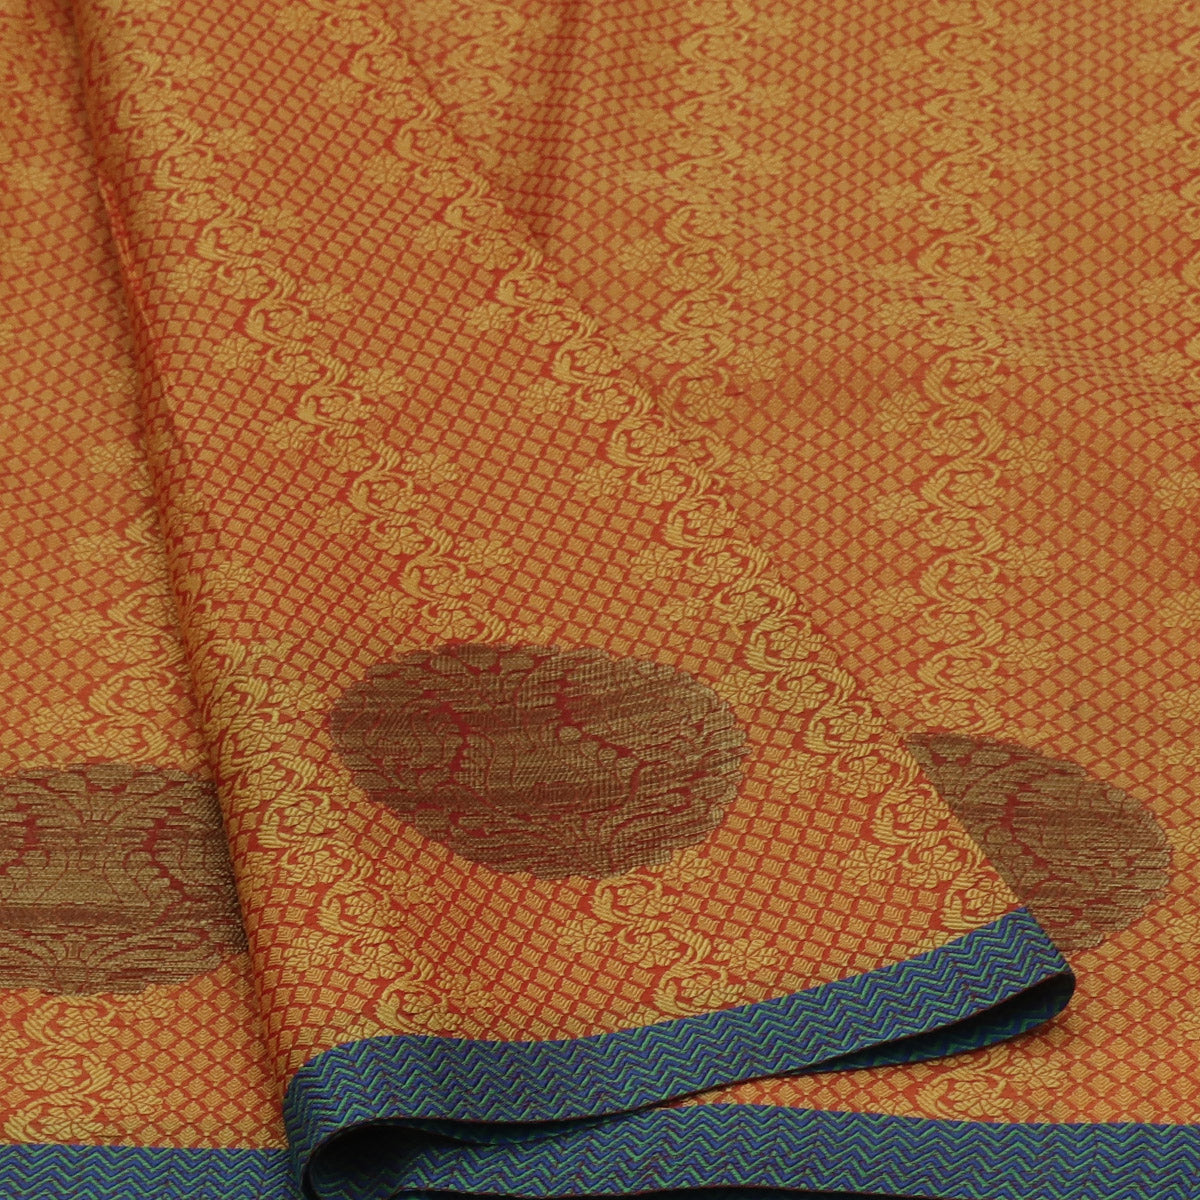 Banarasi Kora Muslin Saree Yellow with Zari Border